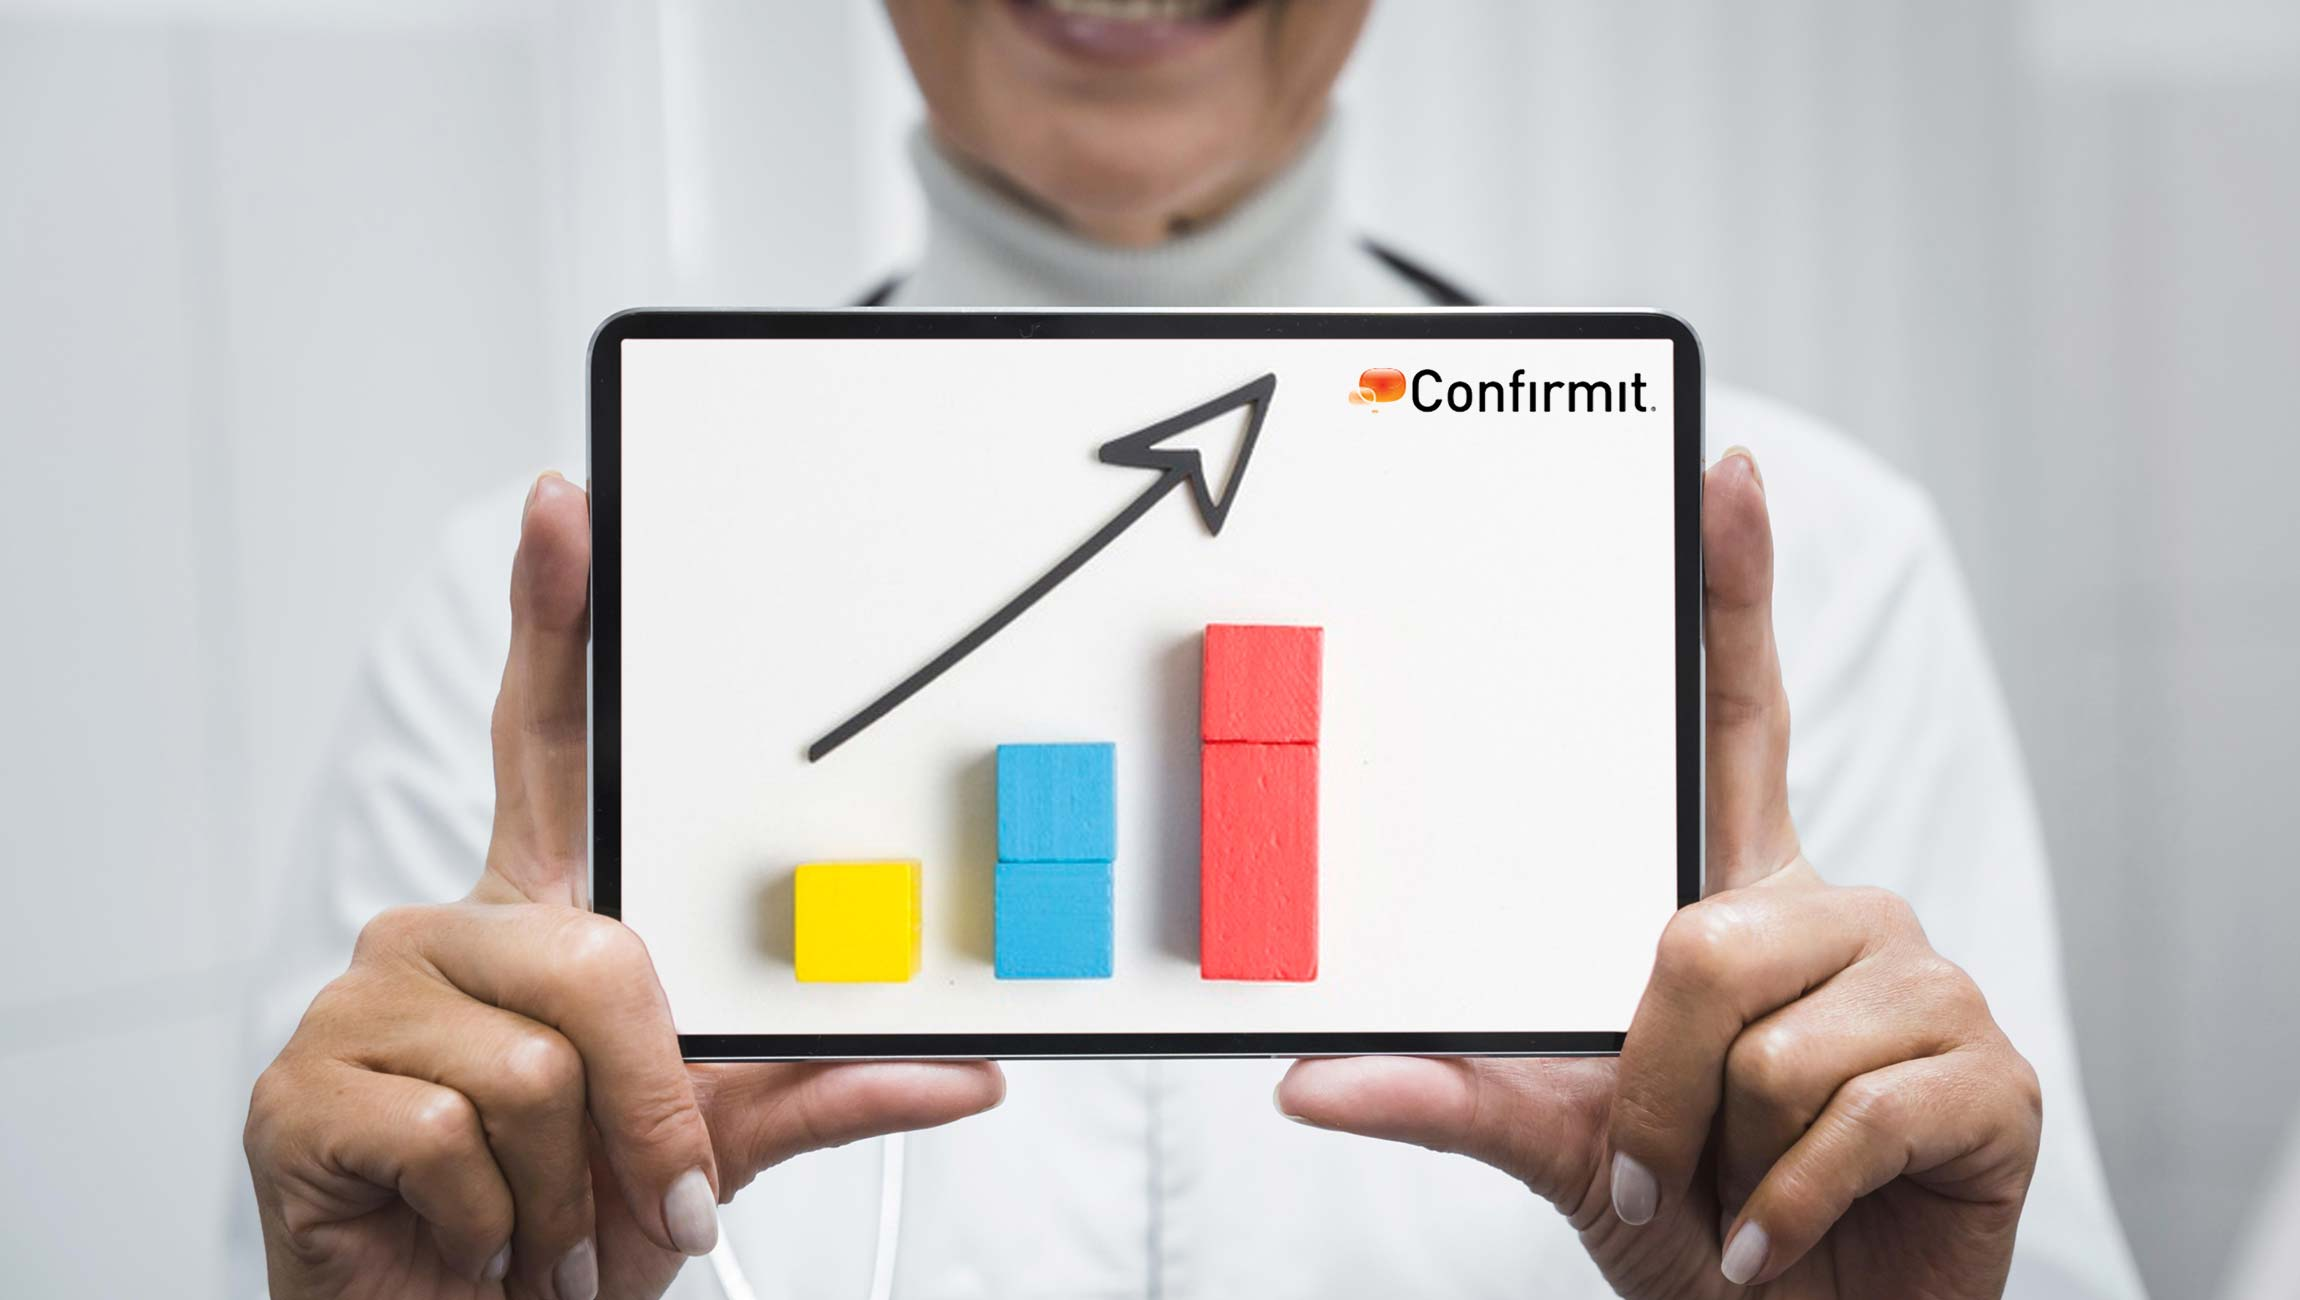 Confirmit Announces Intention to Merge with FocusVision 1